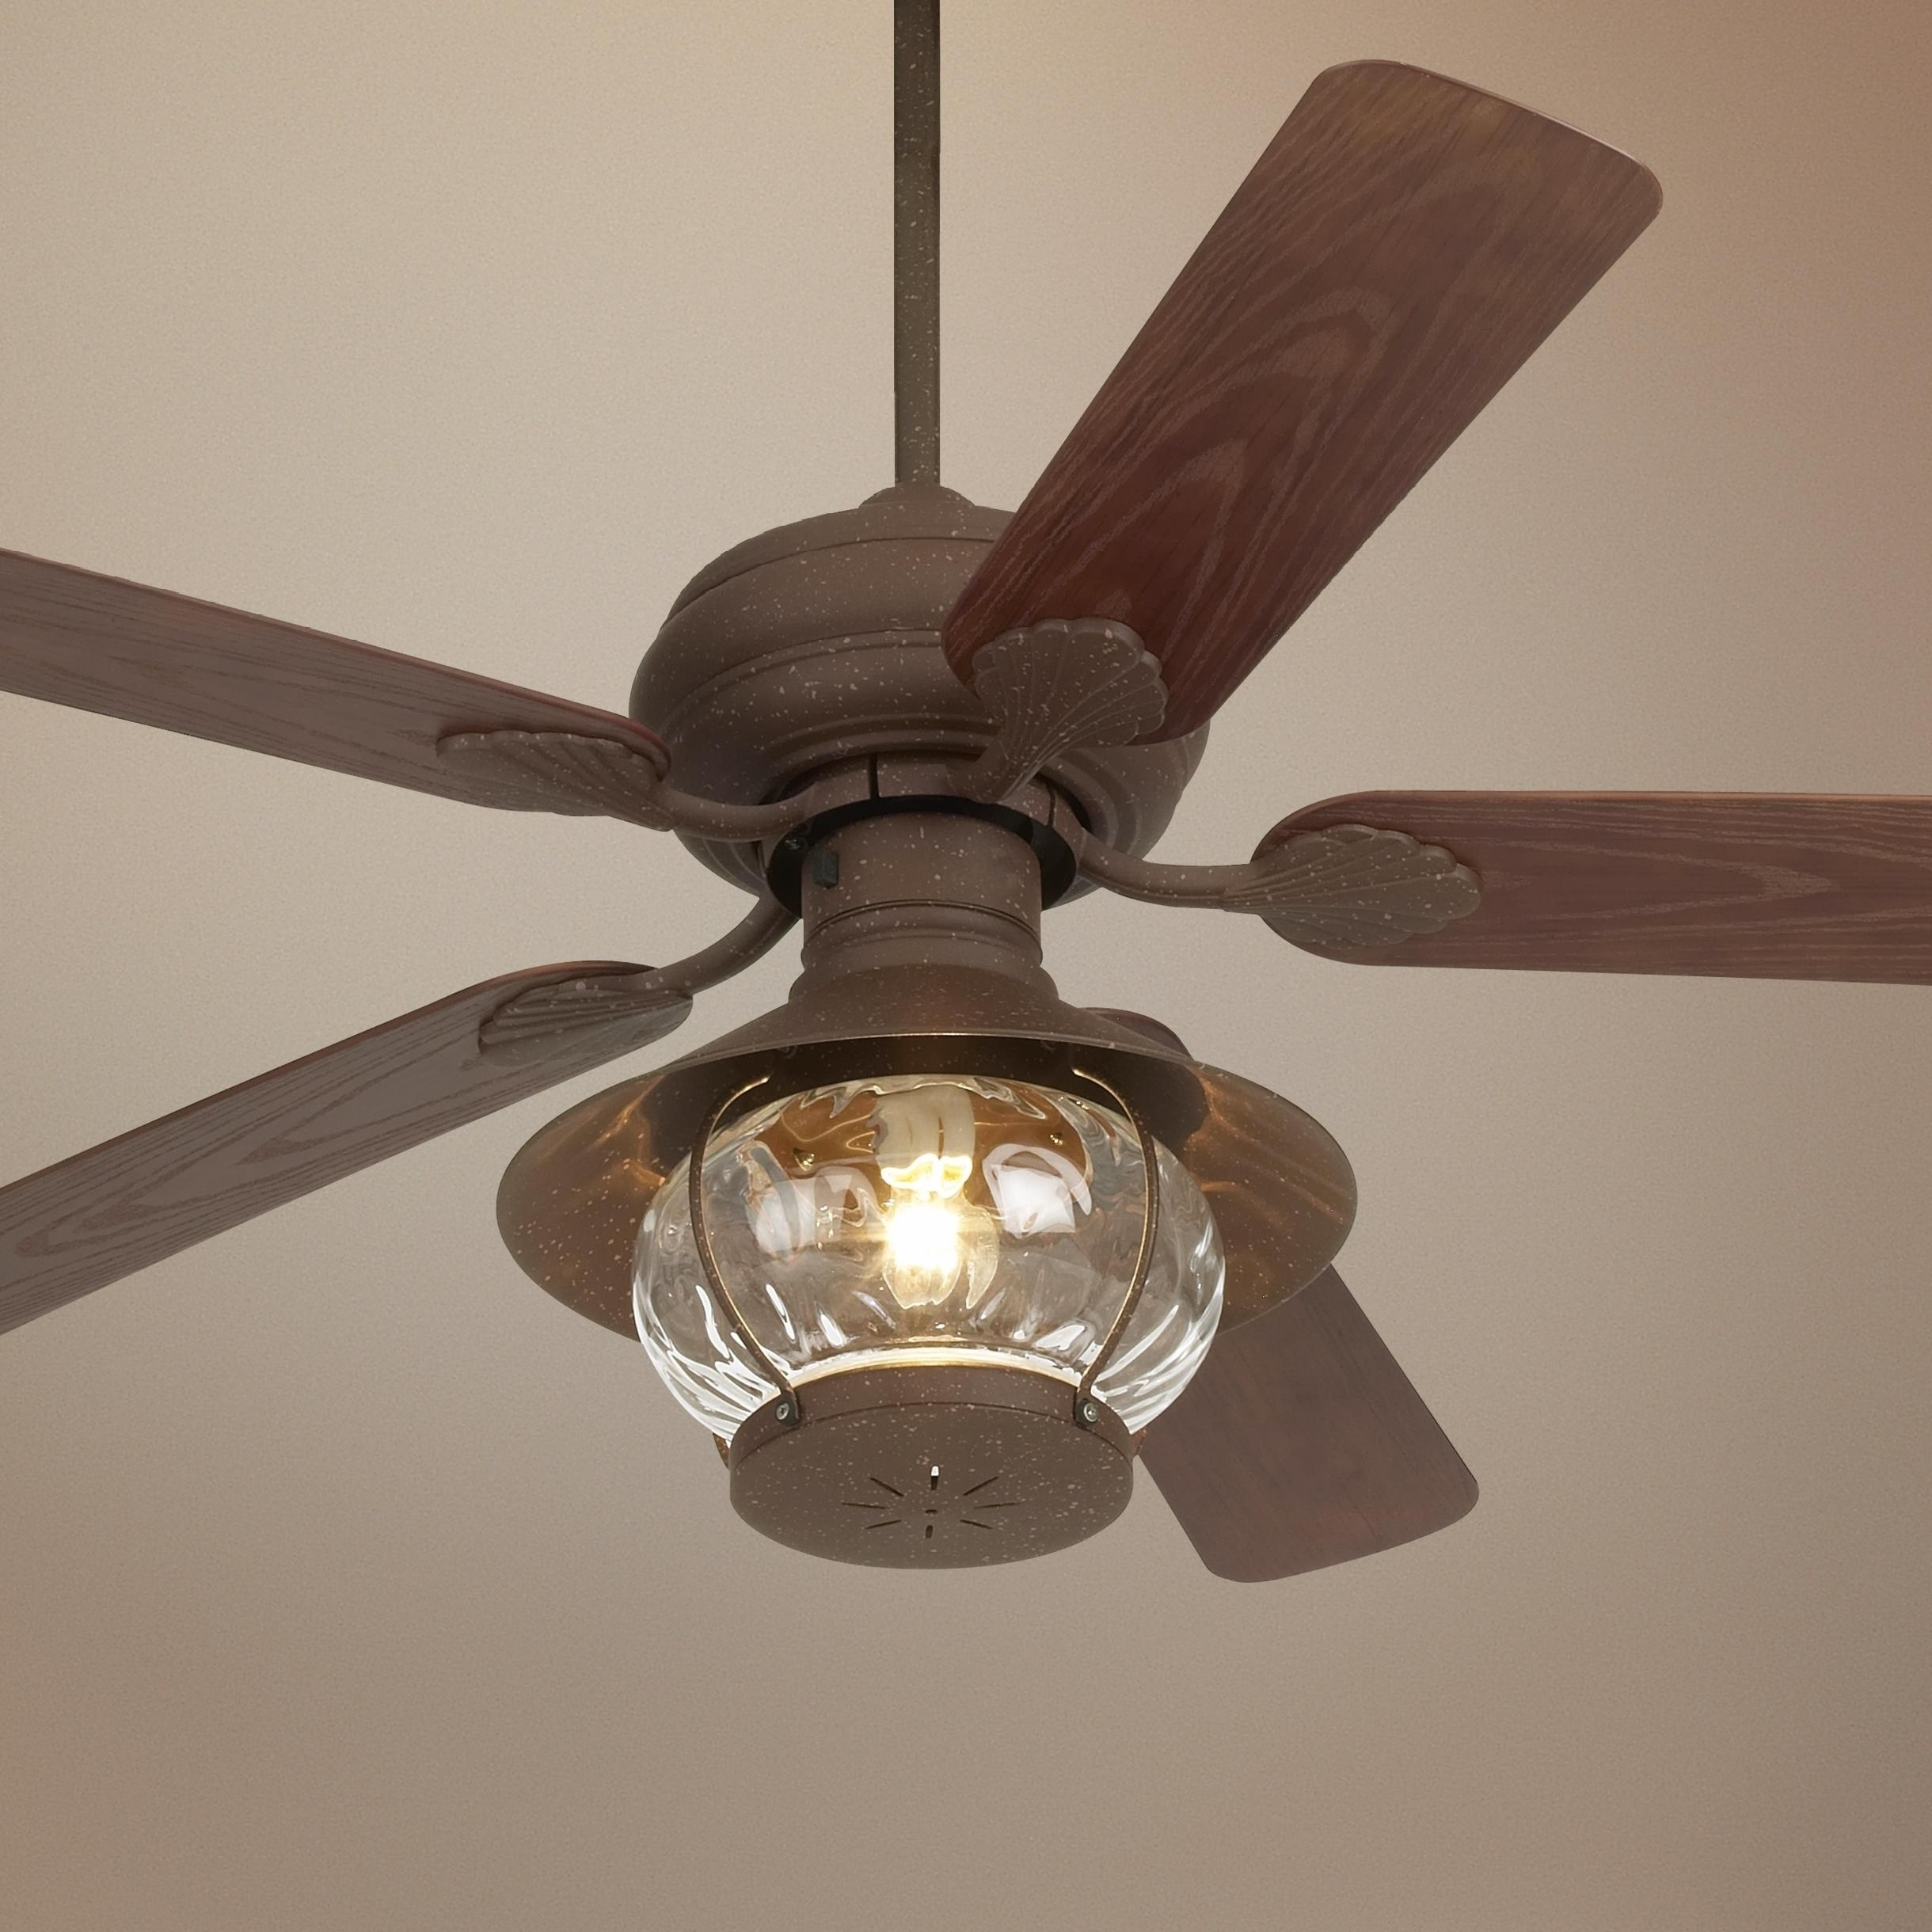 Outdoor Ceiling Fans With Lantern Light With Well Known Frantic Light Rustic Ceiling Light Shades Rustic Ceiling Lights (View 8 of 20)